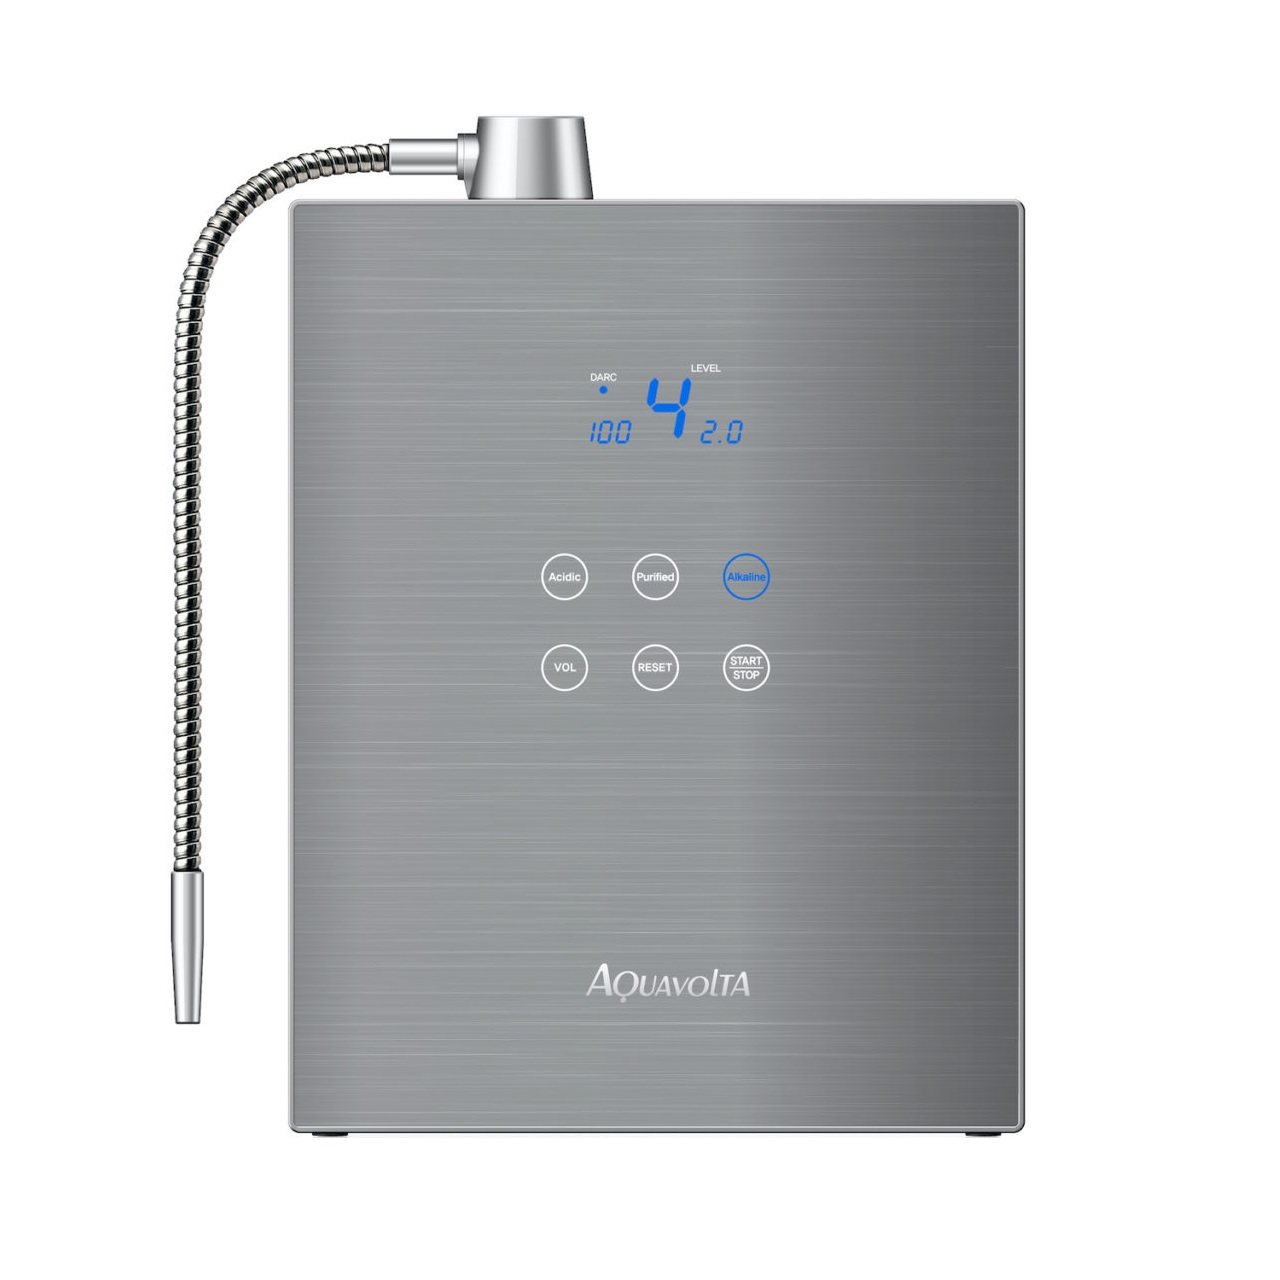 AquaVolta-R-Exquisite-2-0-Counter-Top-or-Under-the-Counter-Water-Ionizer-with-El-gance-control-tap